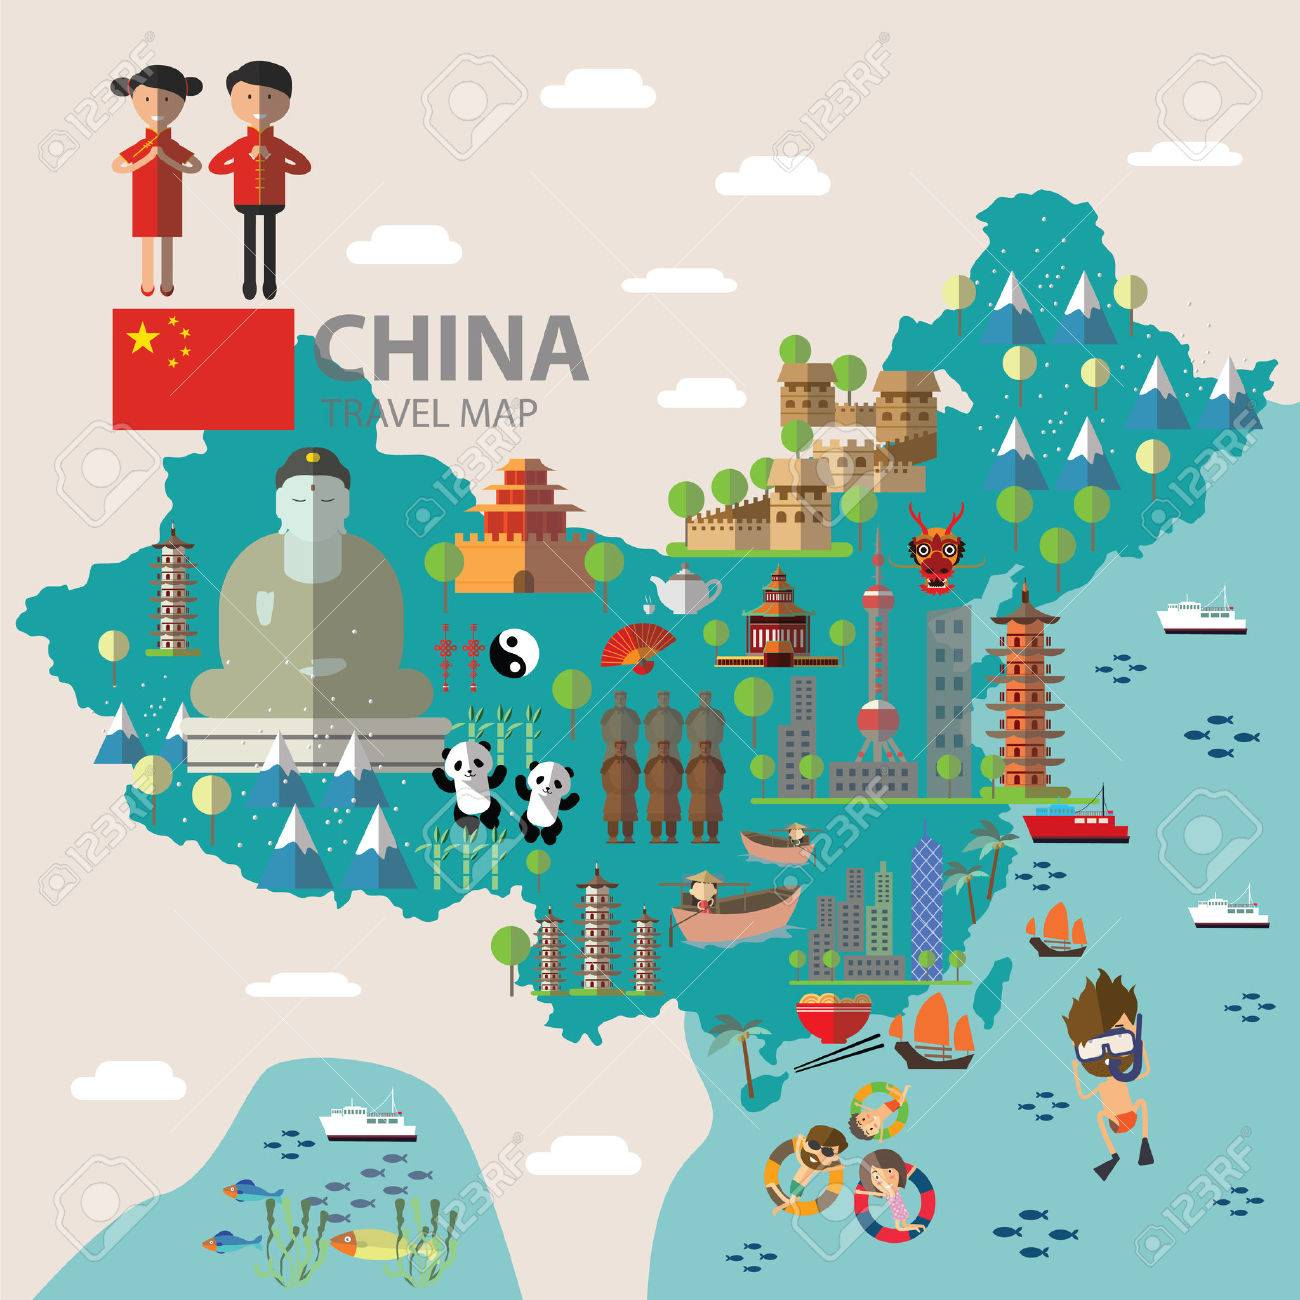 Image Of China Map.China Travel Map Royalty Free Cliparts Vectors And Stock